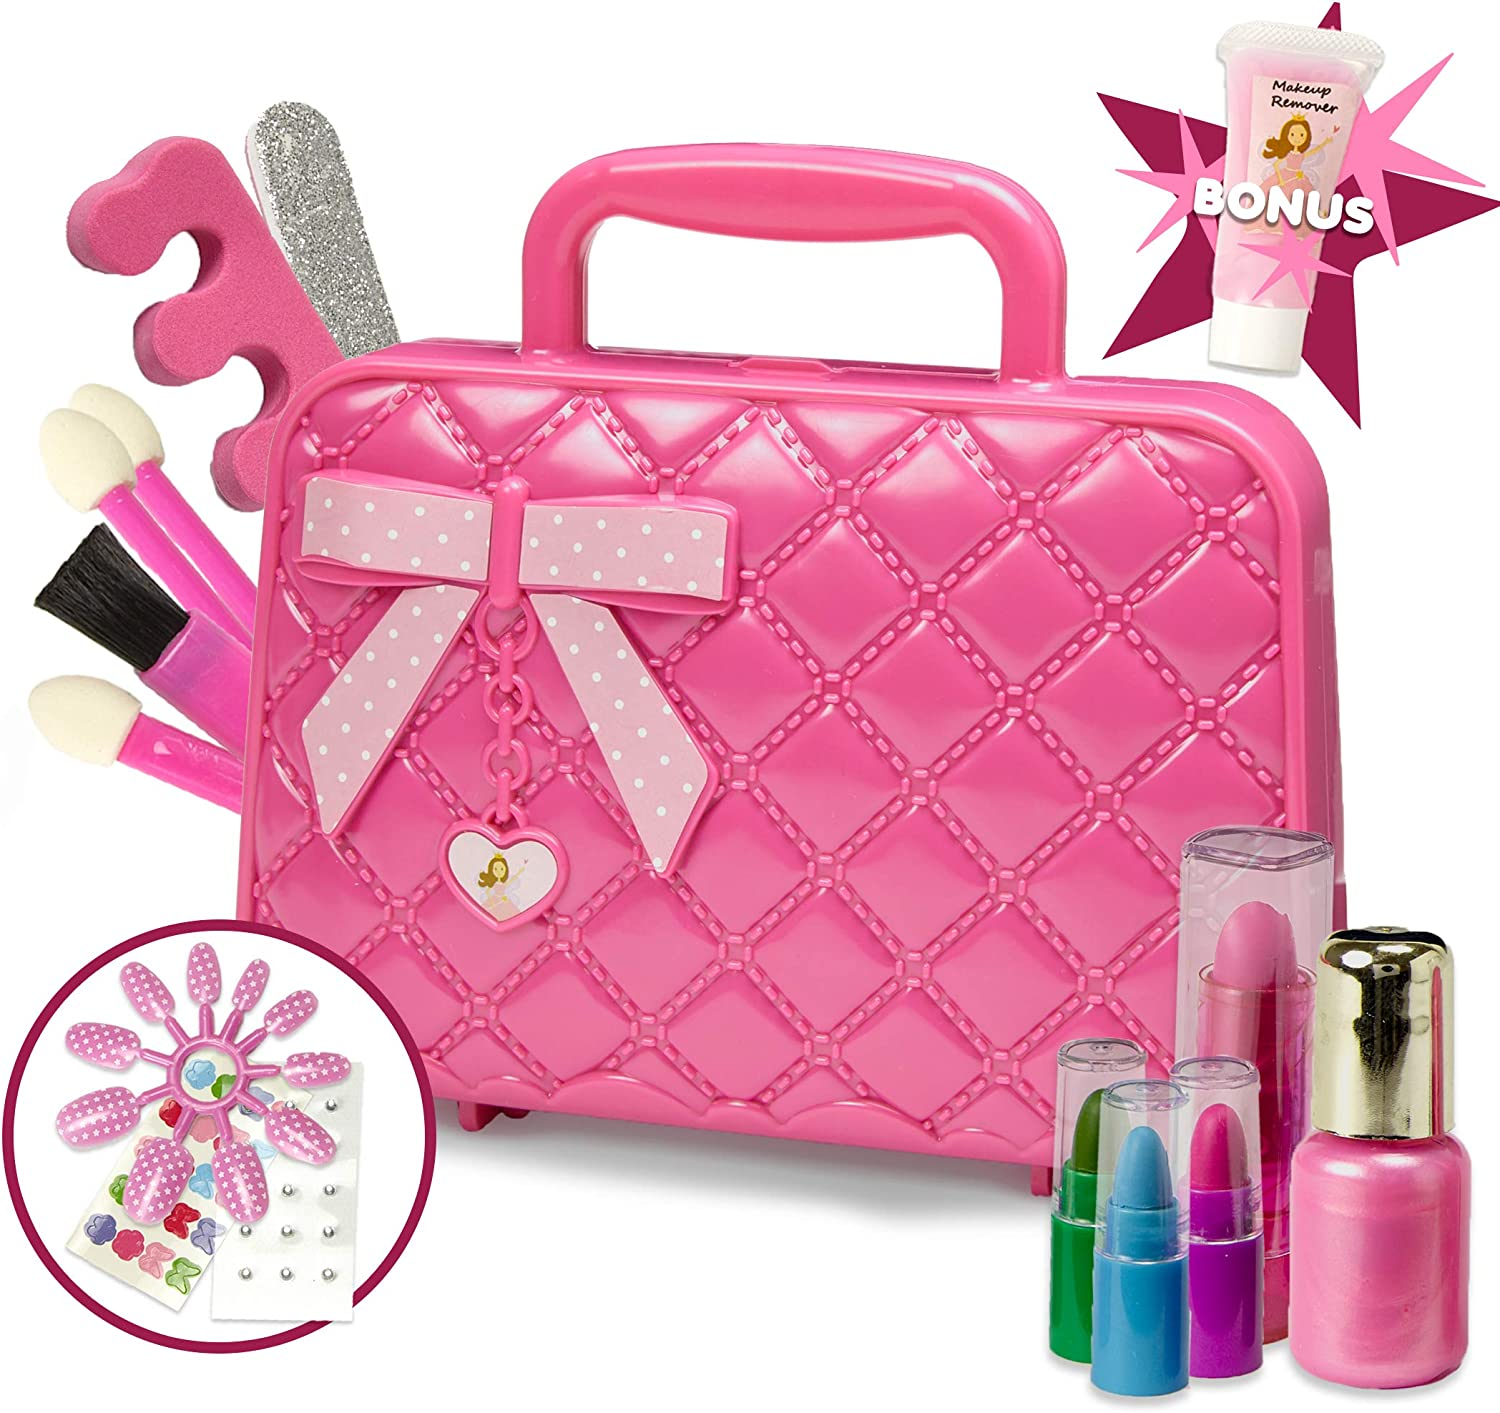 Makeup Kit with Cosmetics